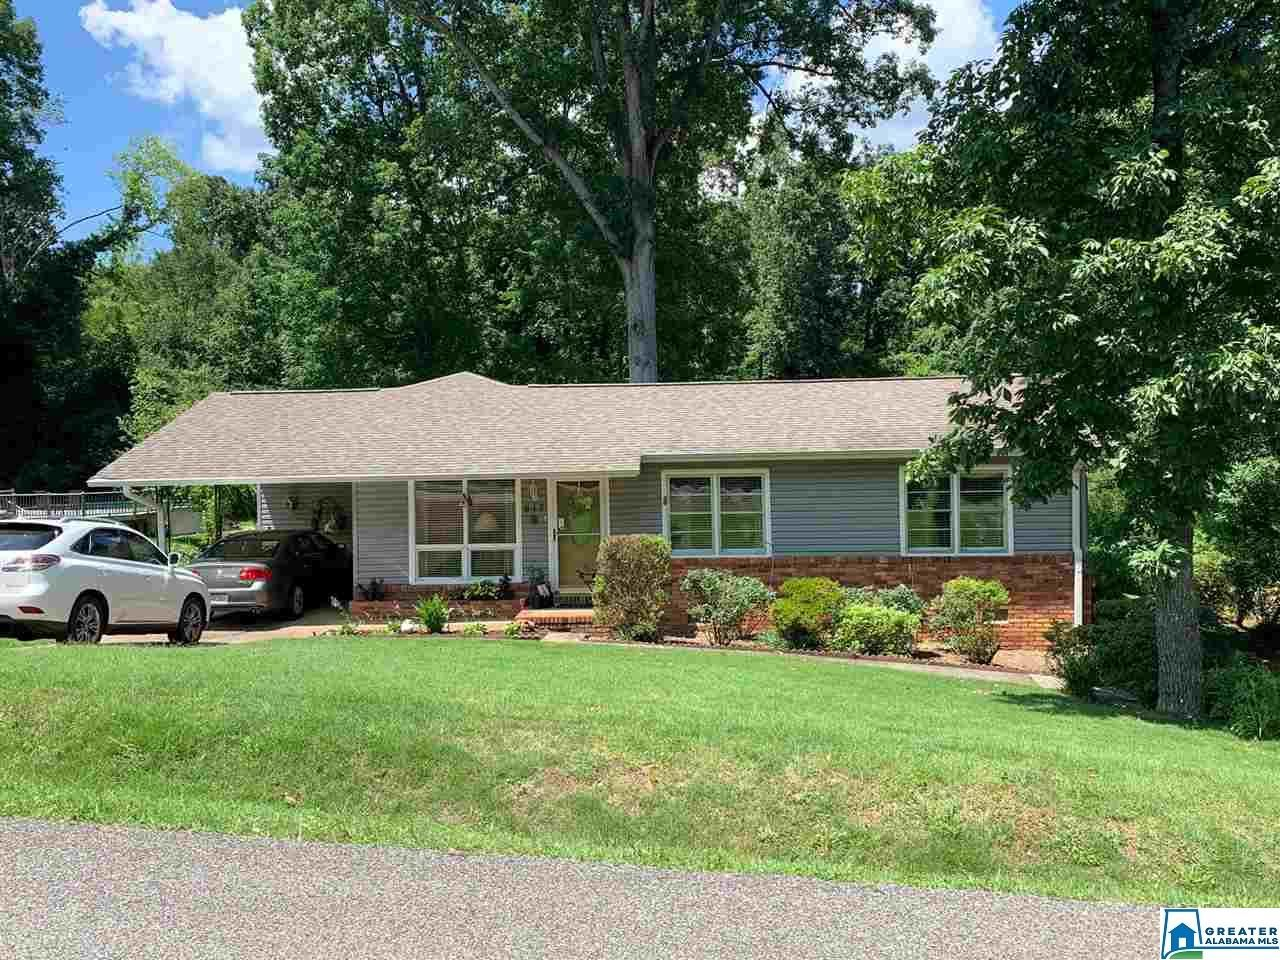 817 W 55TH ST, Anniston, AL 36206 - MLS#: 886295